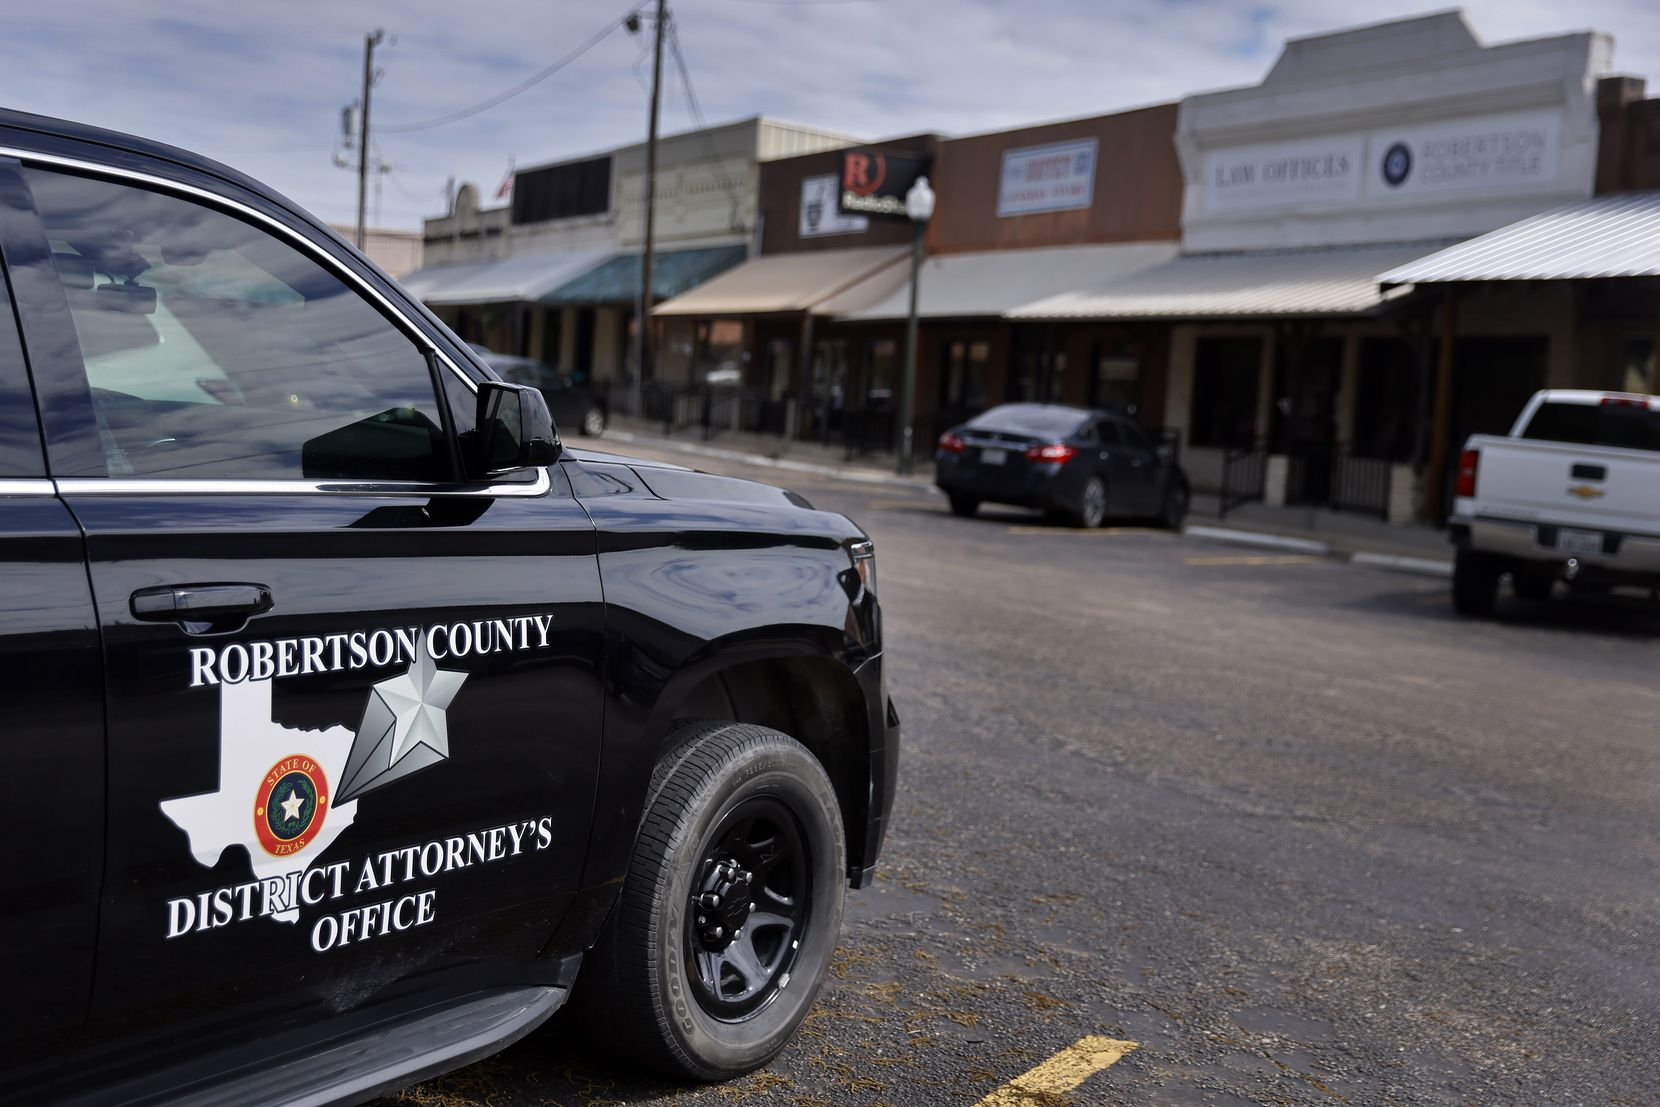 A Robertson County district attorney's office vehicle was parked outside the courthouse in downtown Franklin on May 13, 2021. The complex houses the criminal courts building.